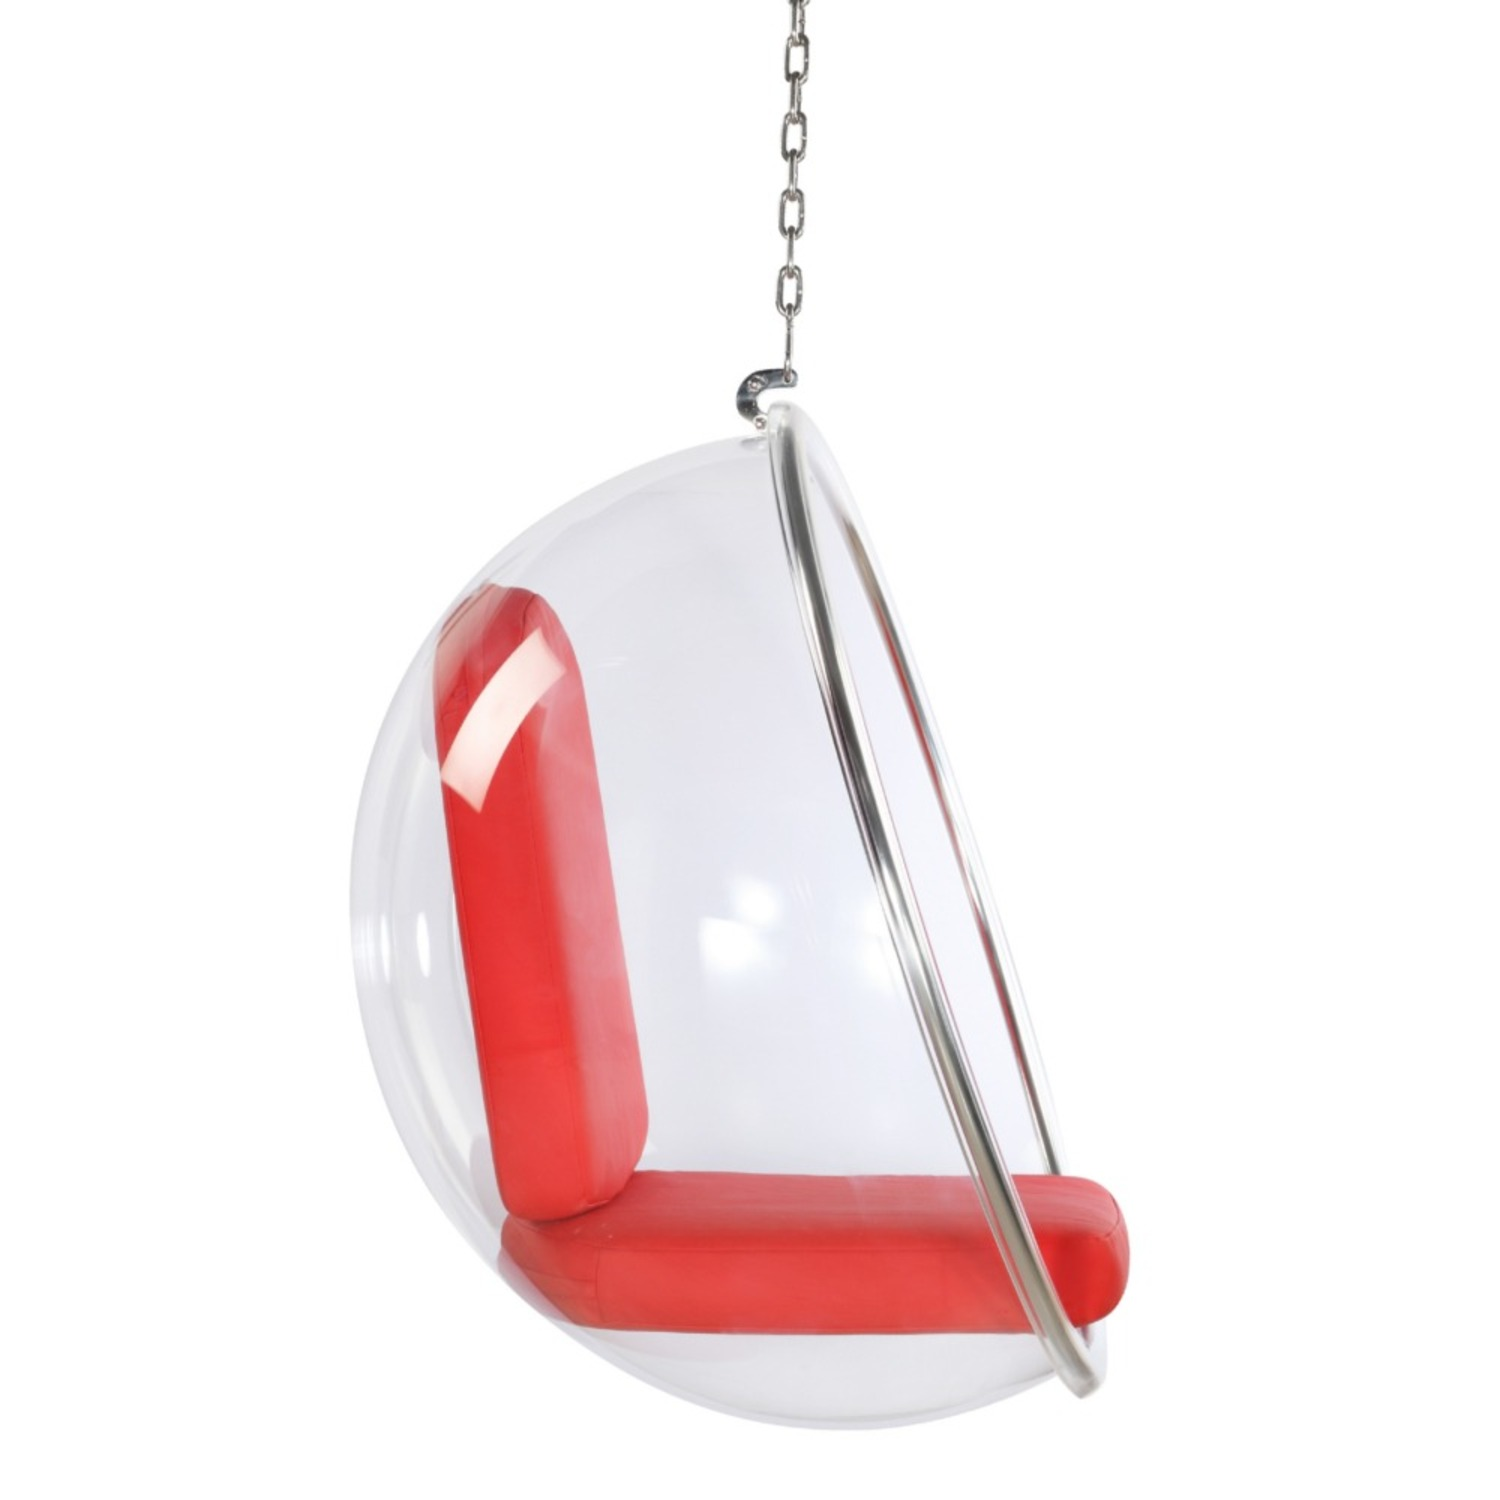 Hanging Chair In Clear Acrylic & Red PU Leather - image-1